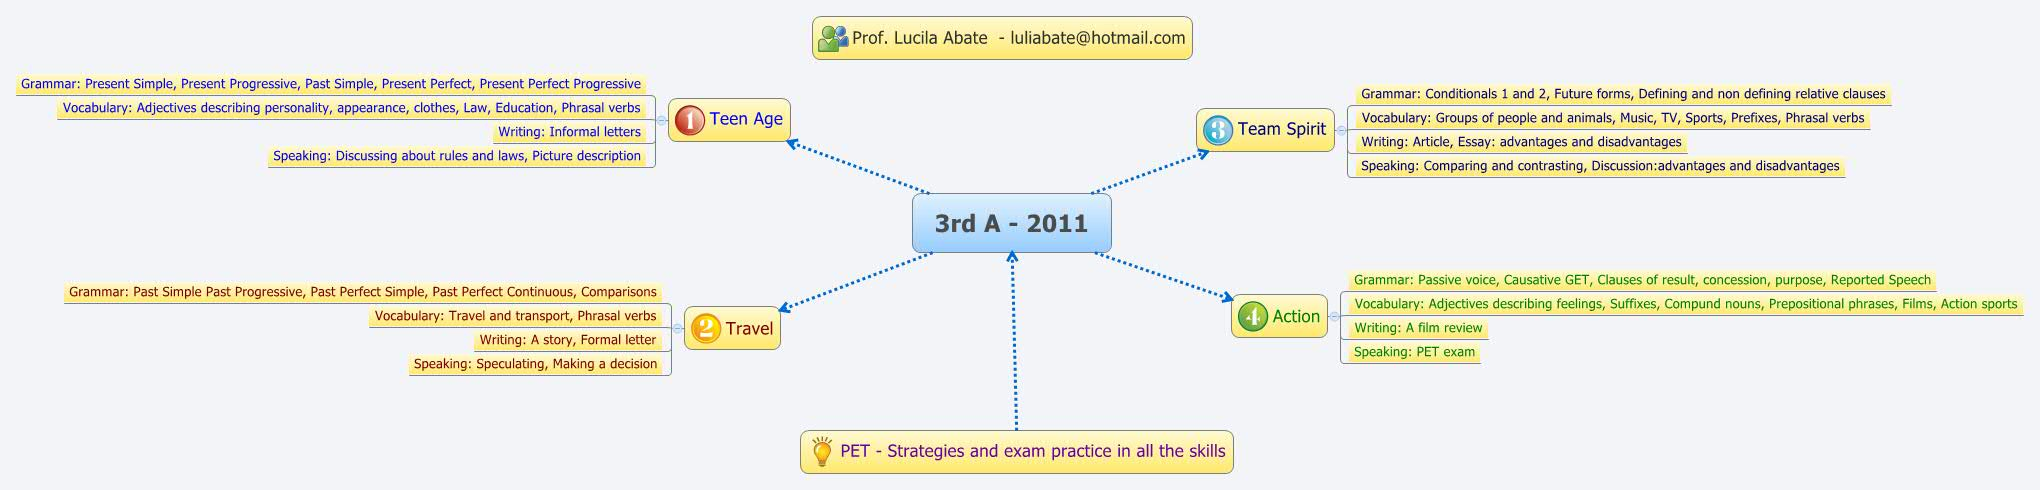 3rd A - 2011 - XMind - Mind Mapping Software